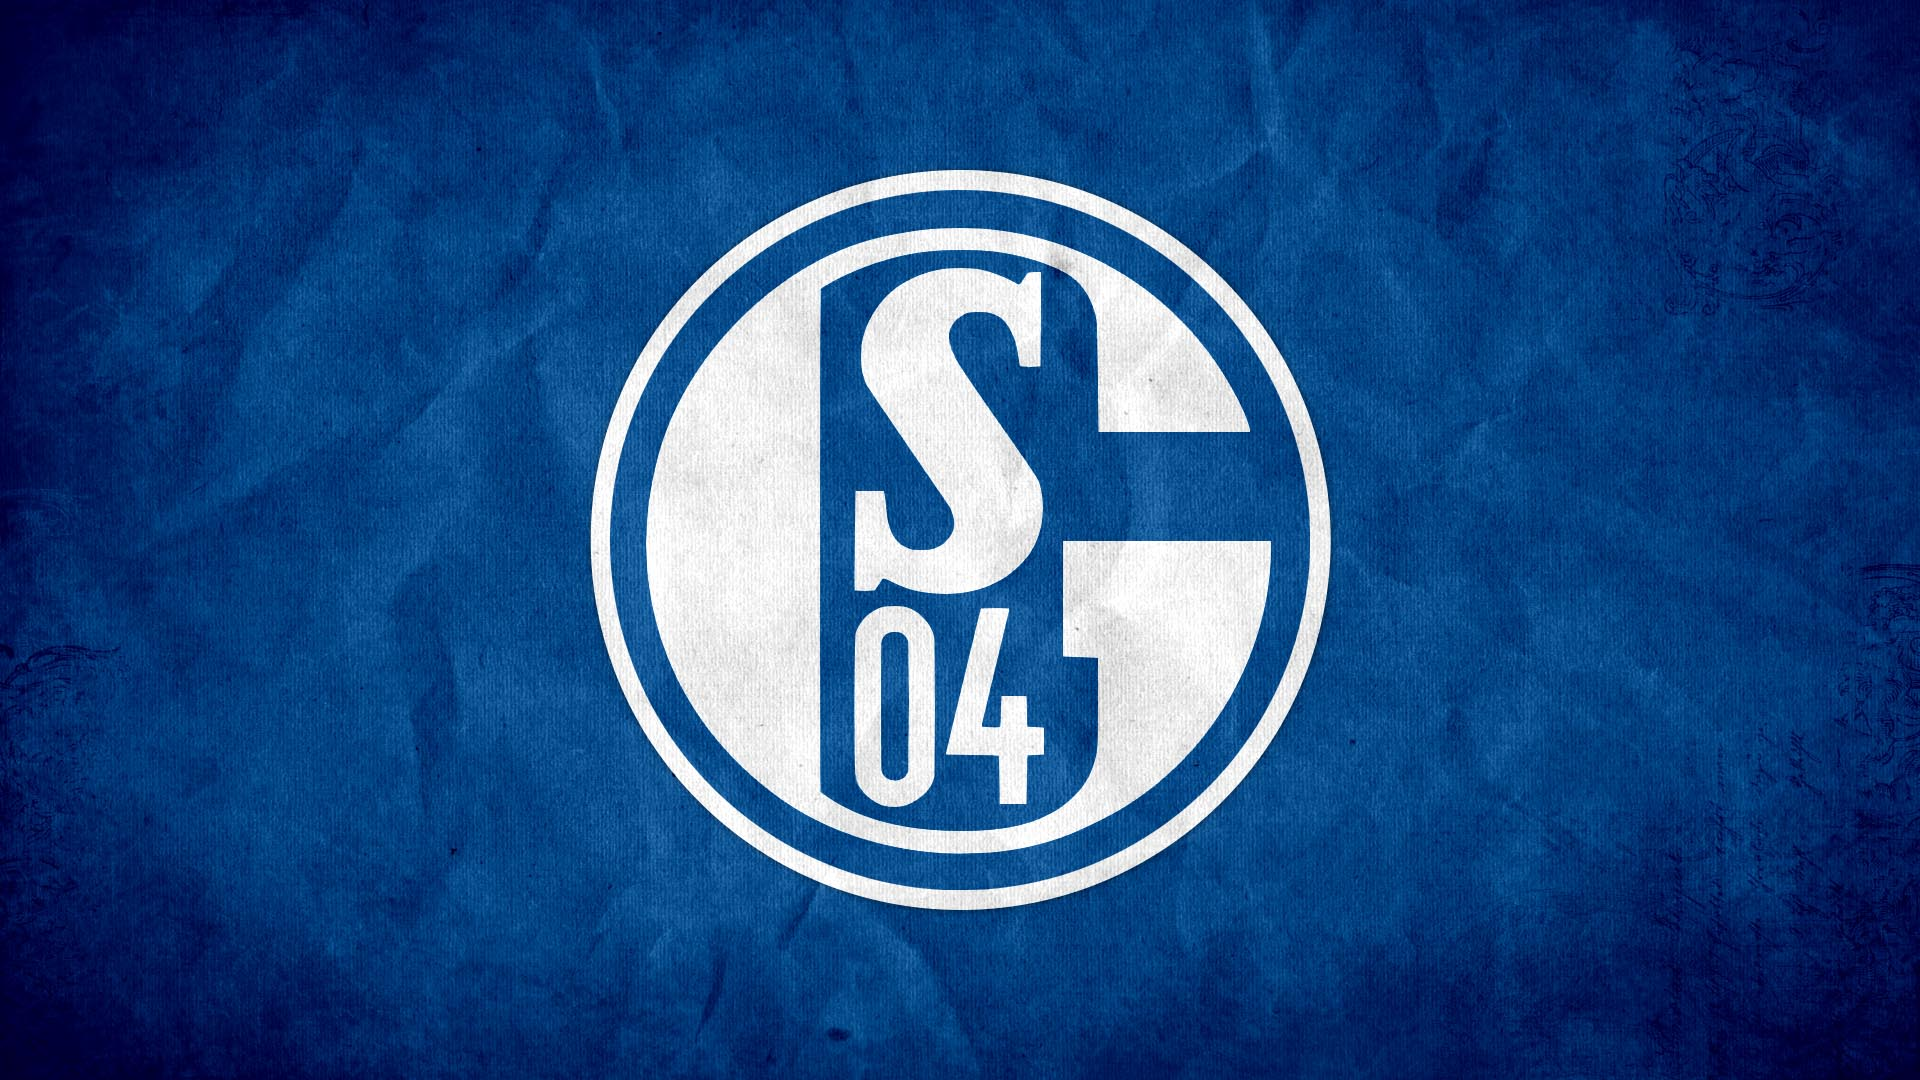 fc schalke 04 wallpapers wallpaper cave. Black Bedroom Furniture Sets. Home Design Ideas